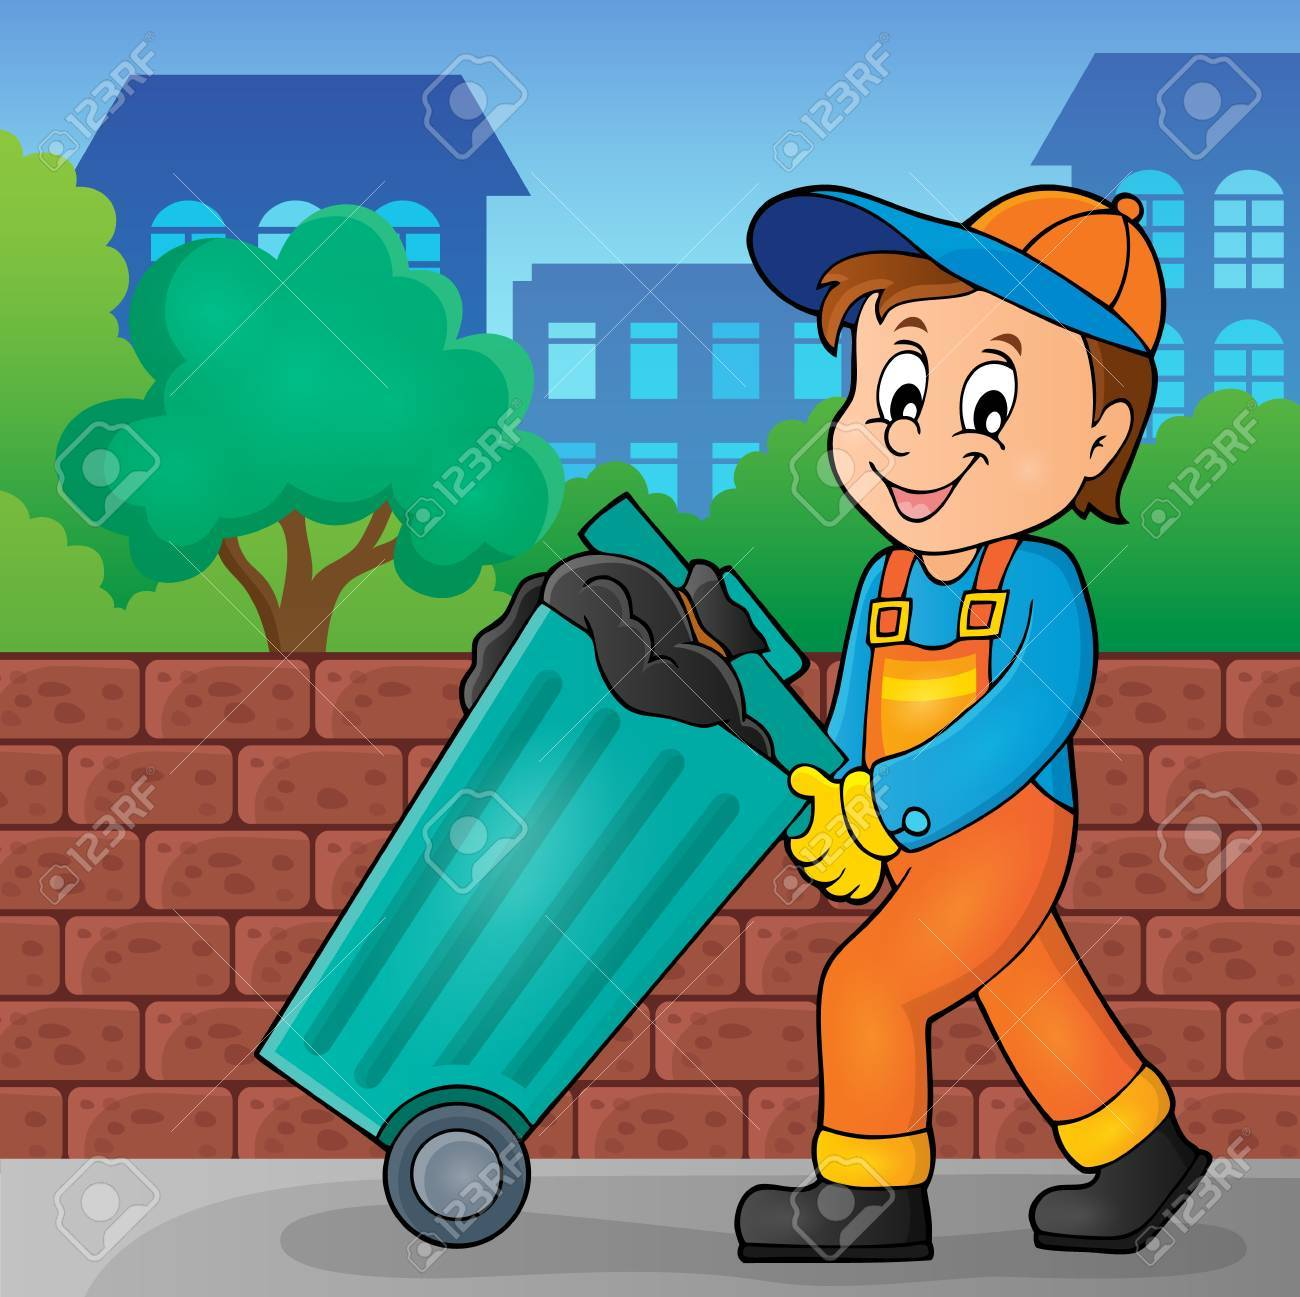 Garbage collector theme image 2.